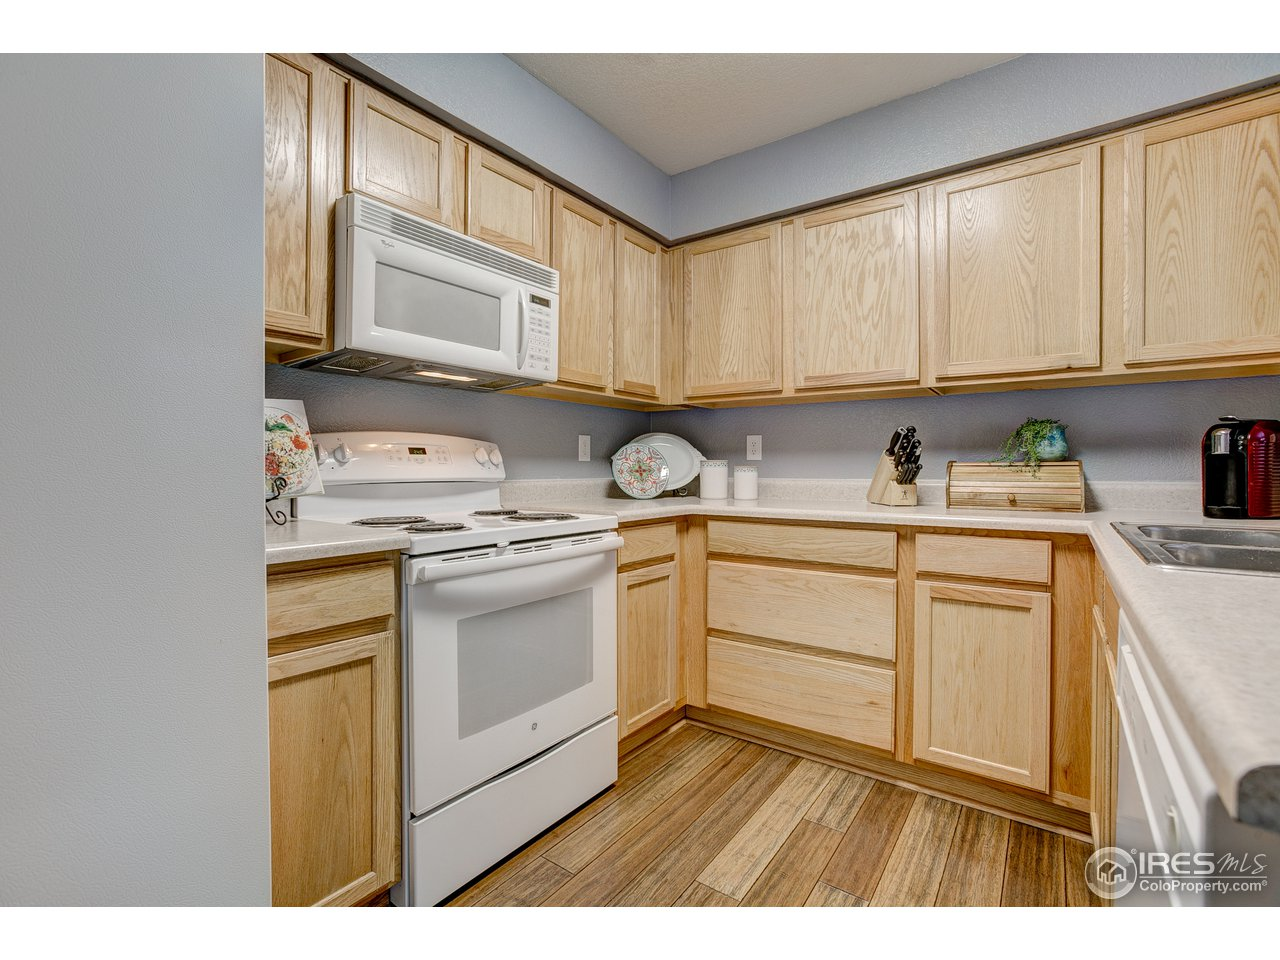 All Kitchen Appliance are Included